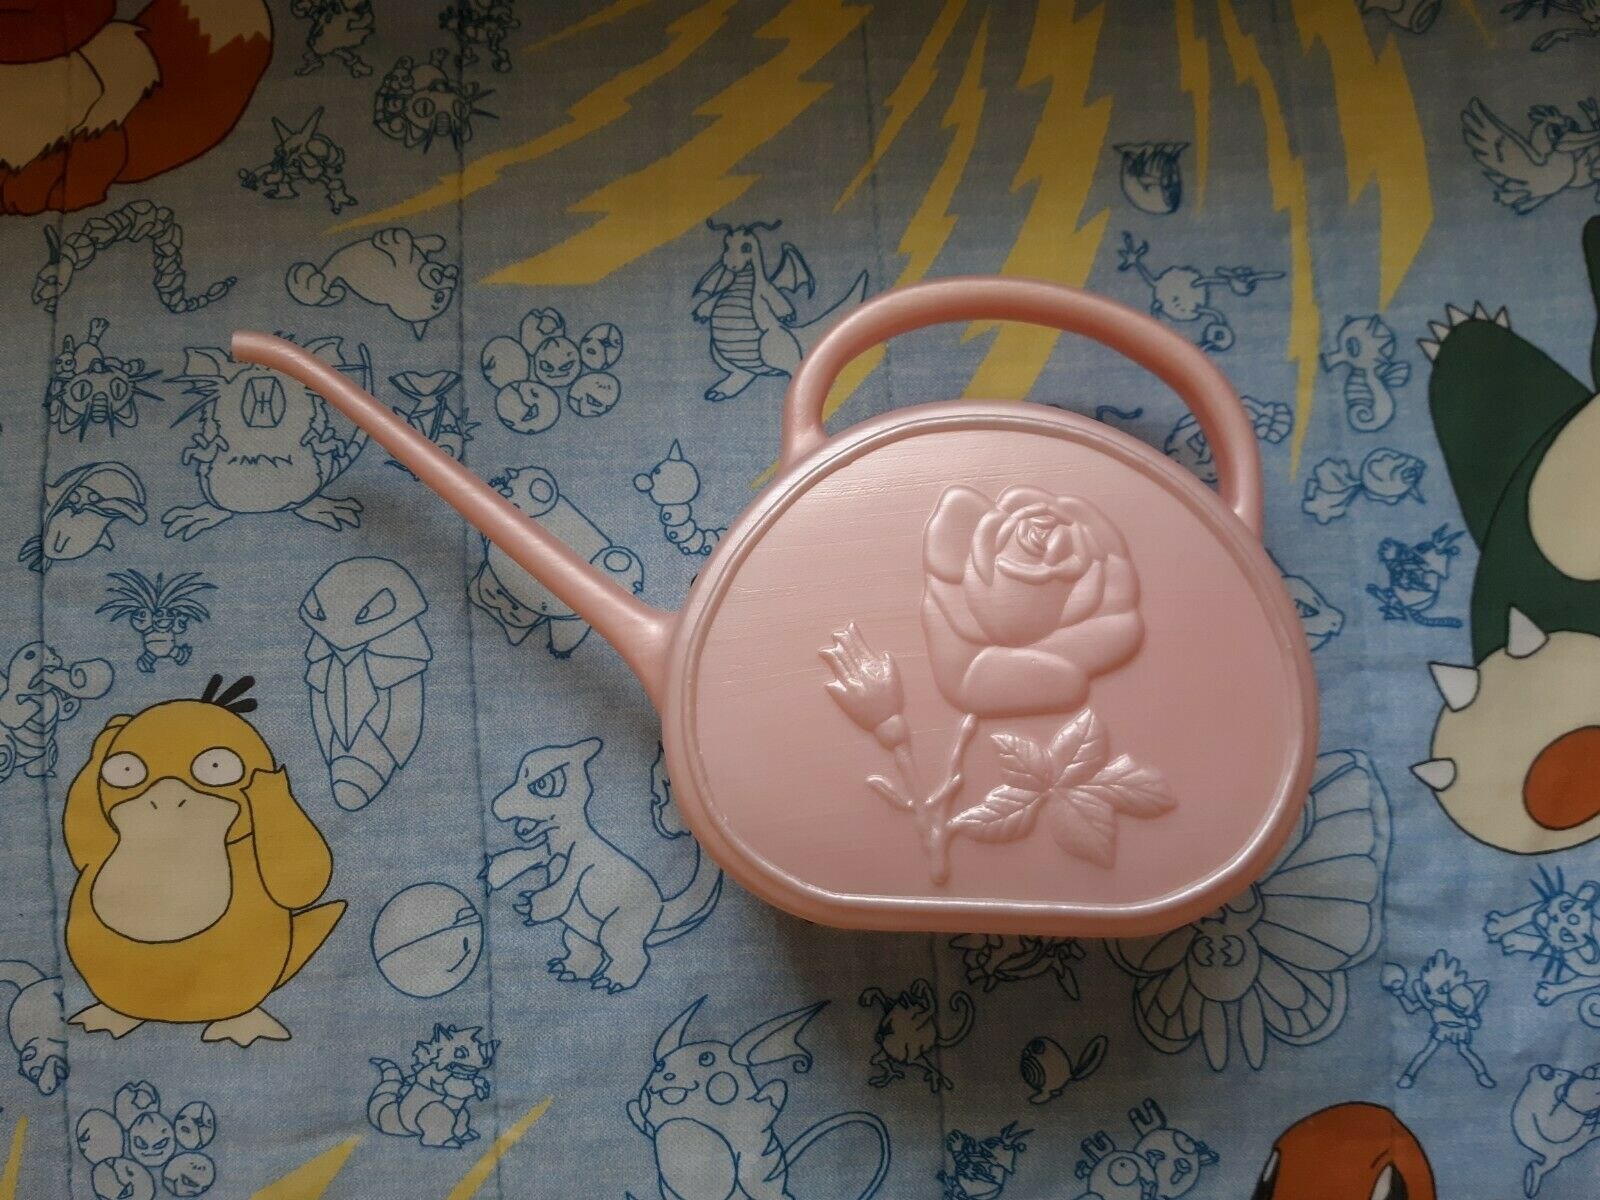 Union Products Watering Can Leominster MA Rose Flower Pink Plastic Cute Vintage